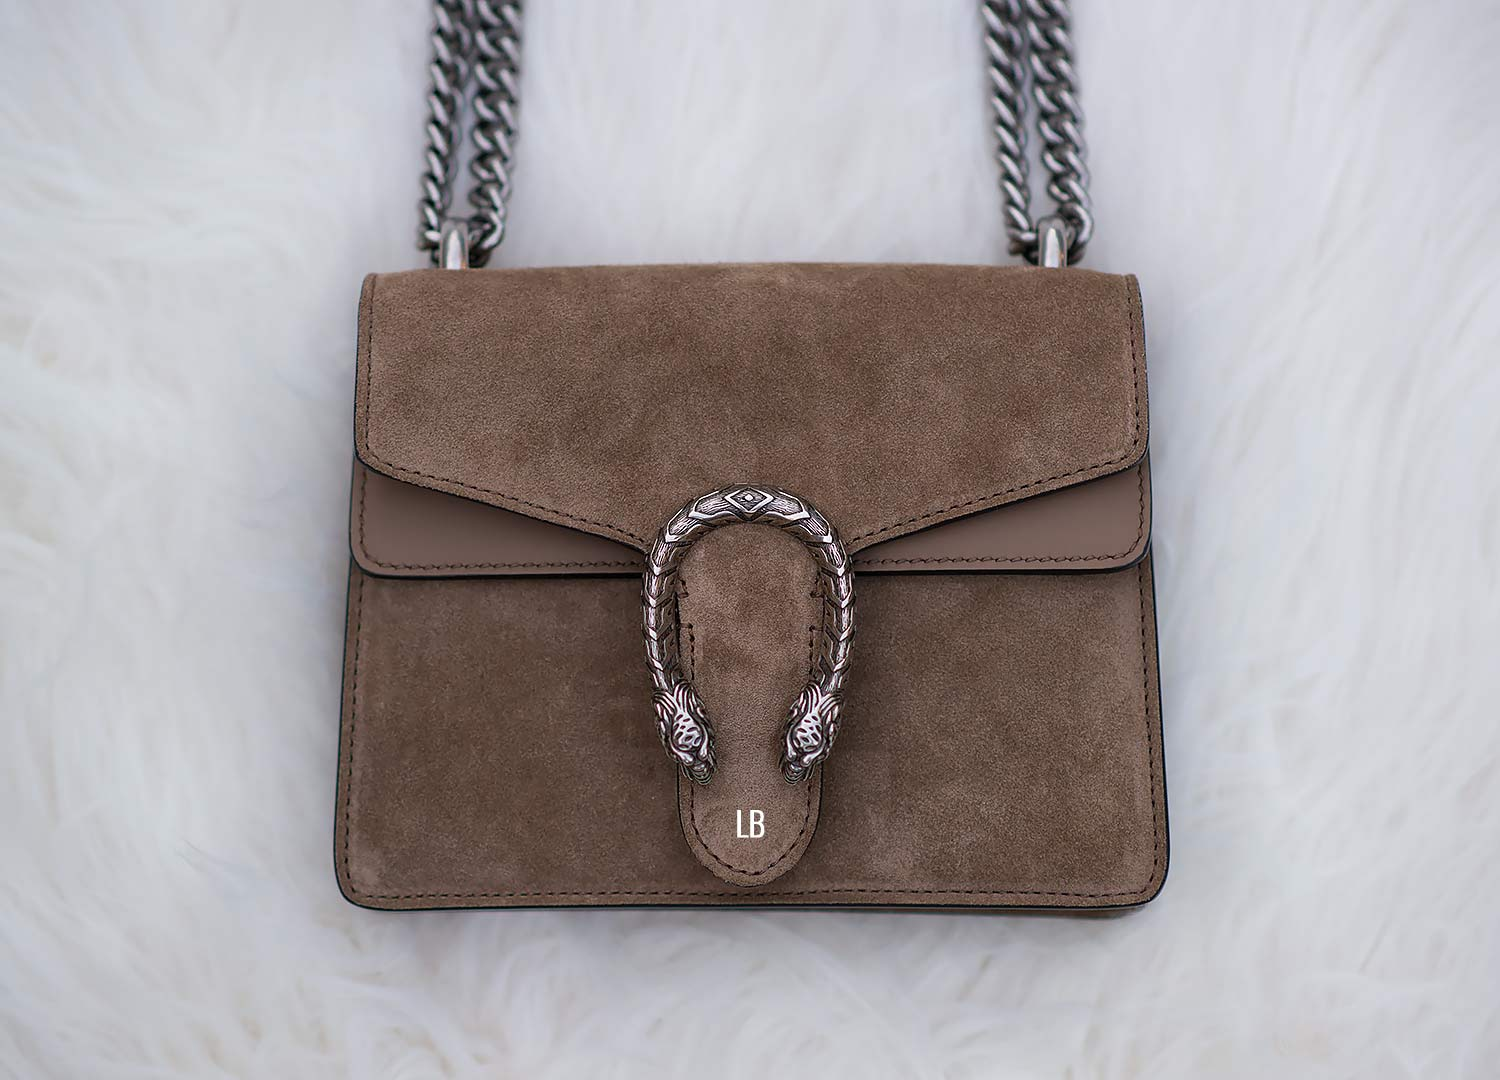 Gucci Dionysus Mini Suede Shoulder Bag Review